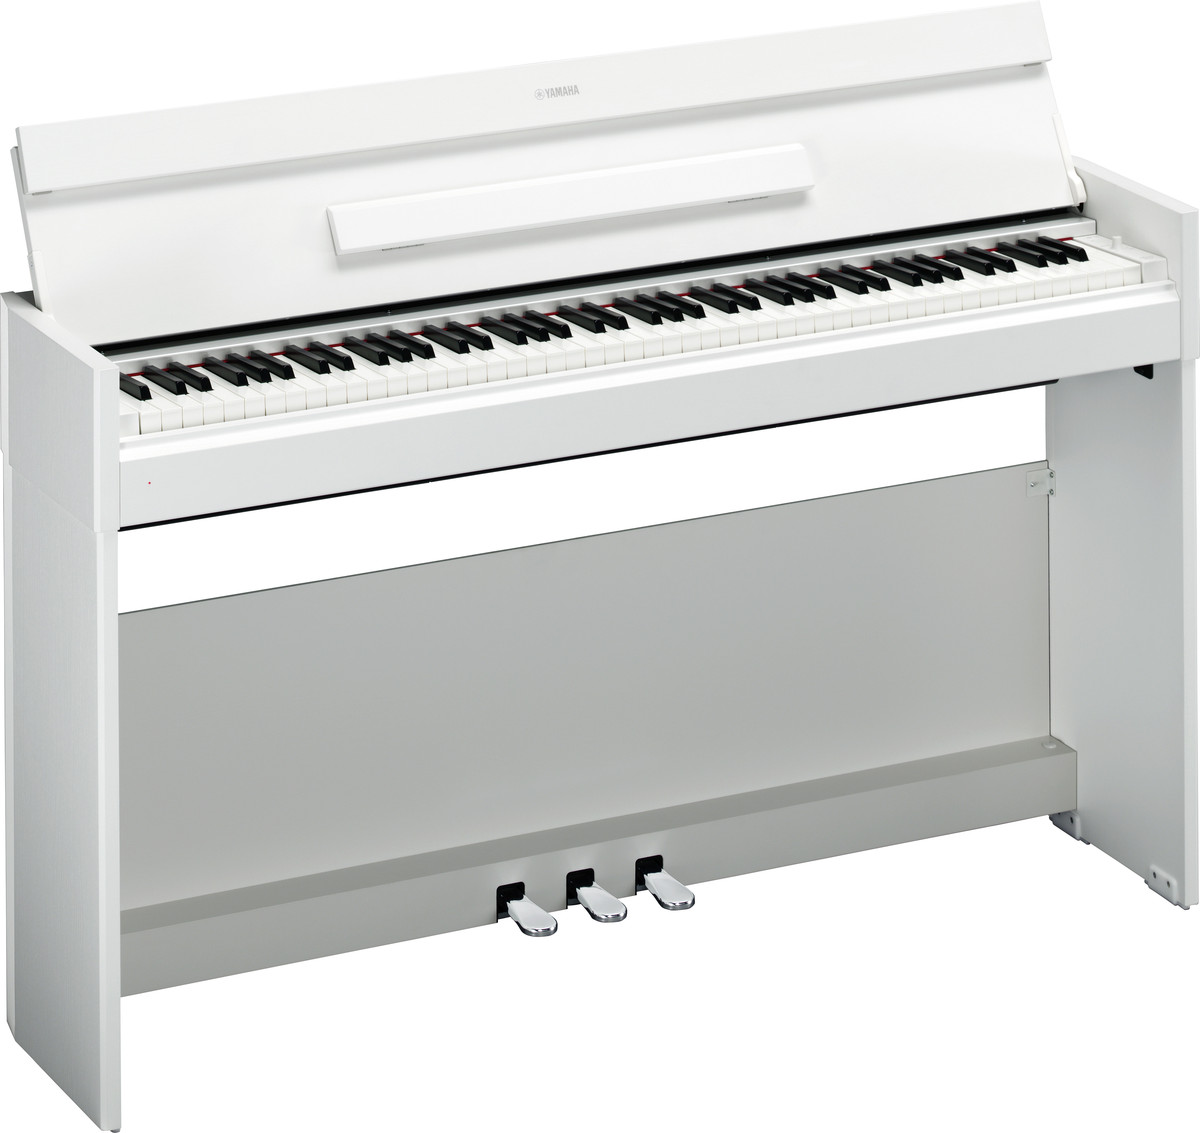 yamaha ydp s52 digital piano white at gear4music. Black Bedroom Furniture Sets. Home Design Ideas